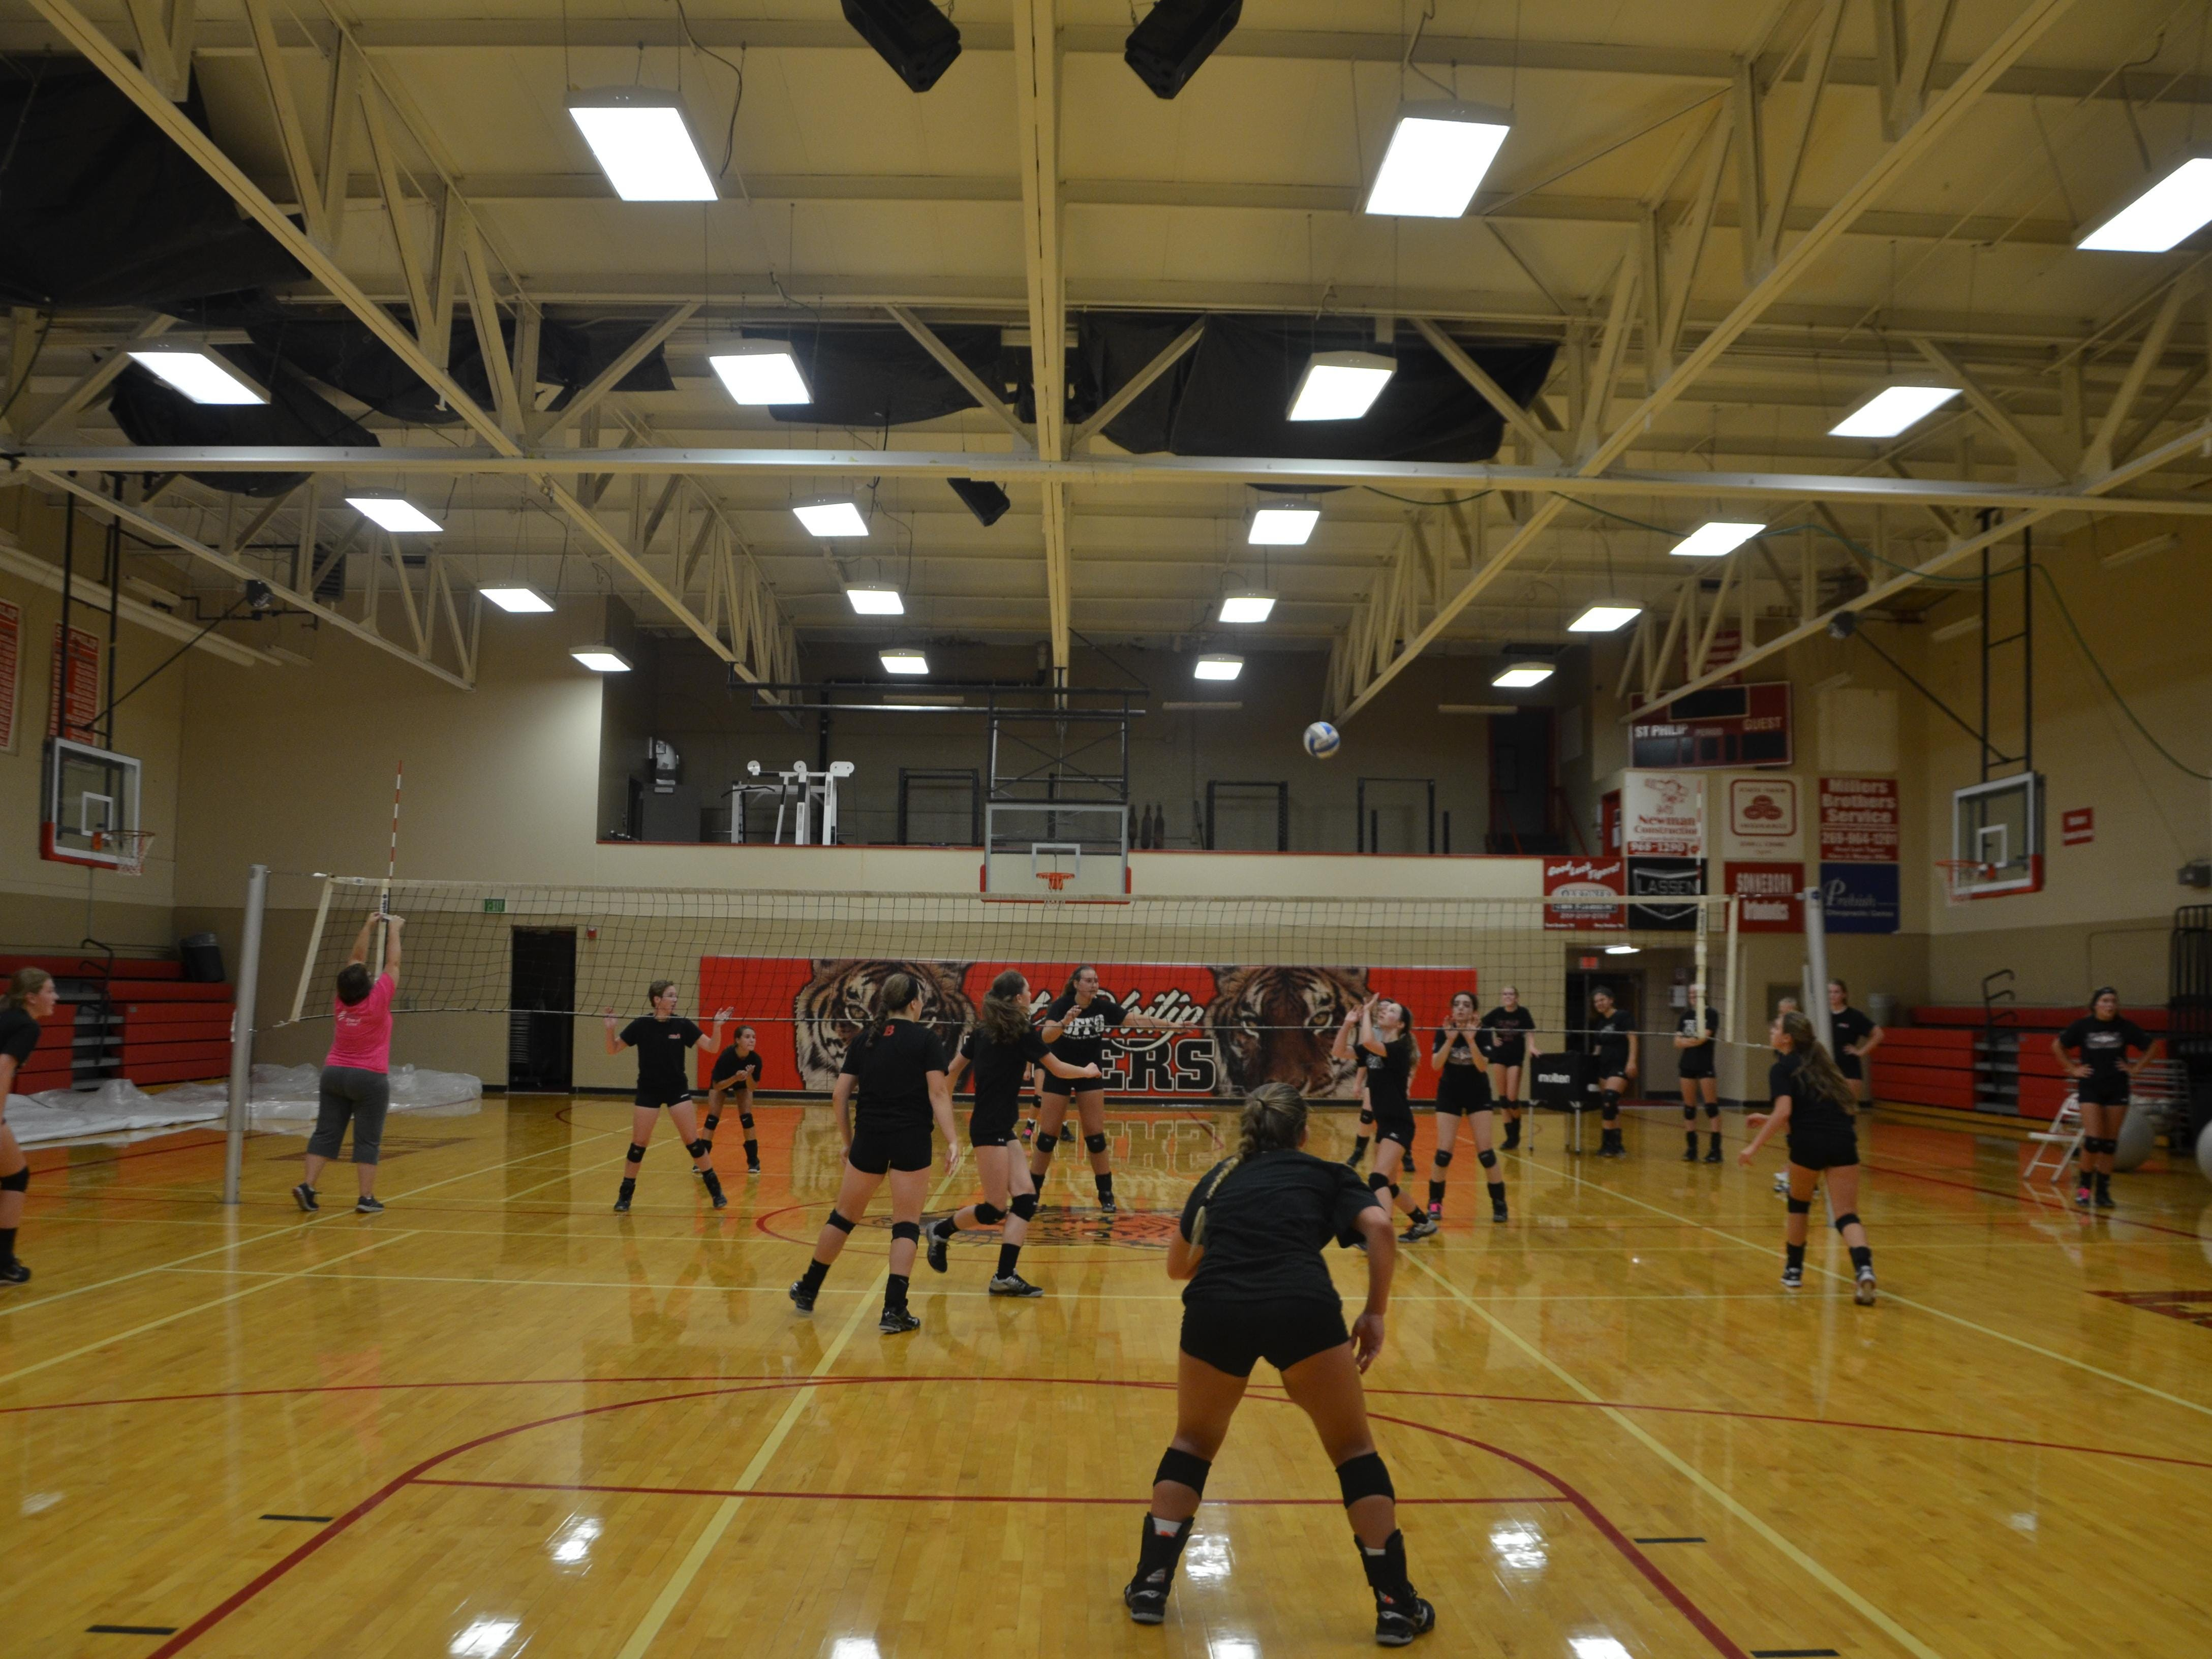 The St. Philip volleyball team scrimmages during the first practice of the season on Wednesday.